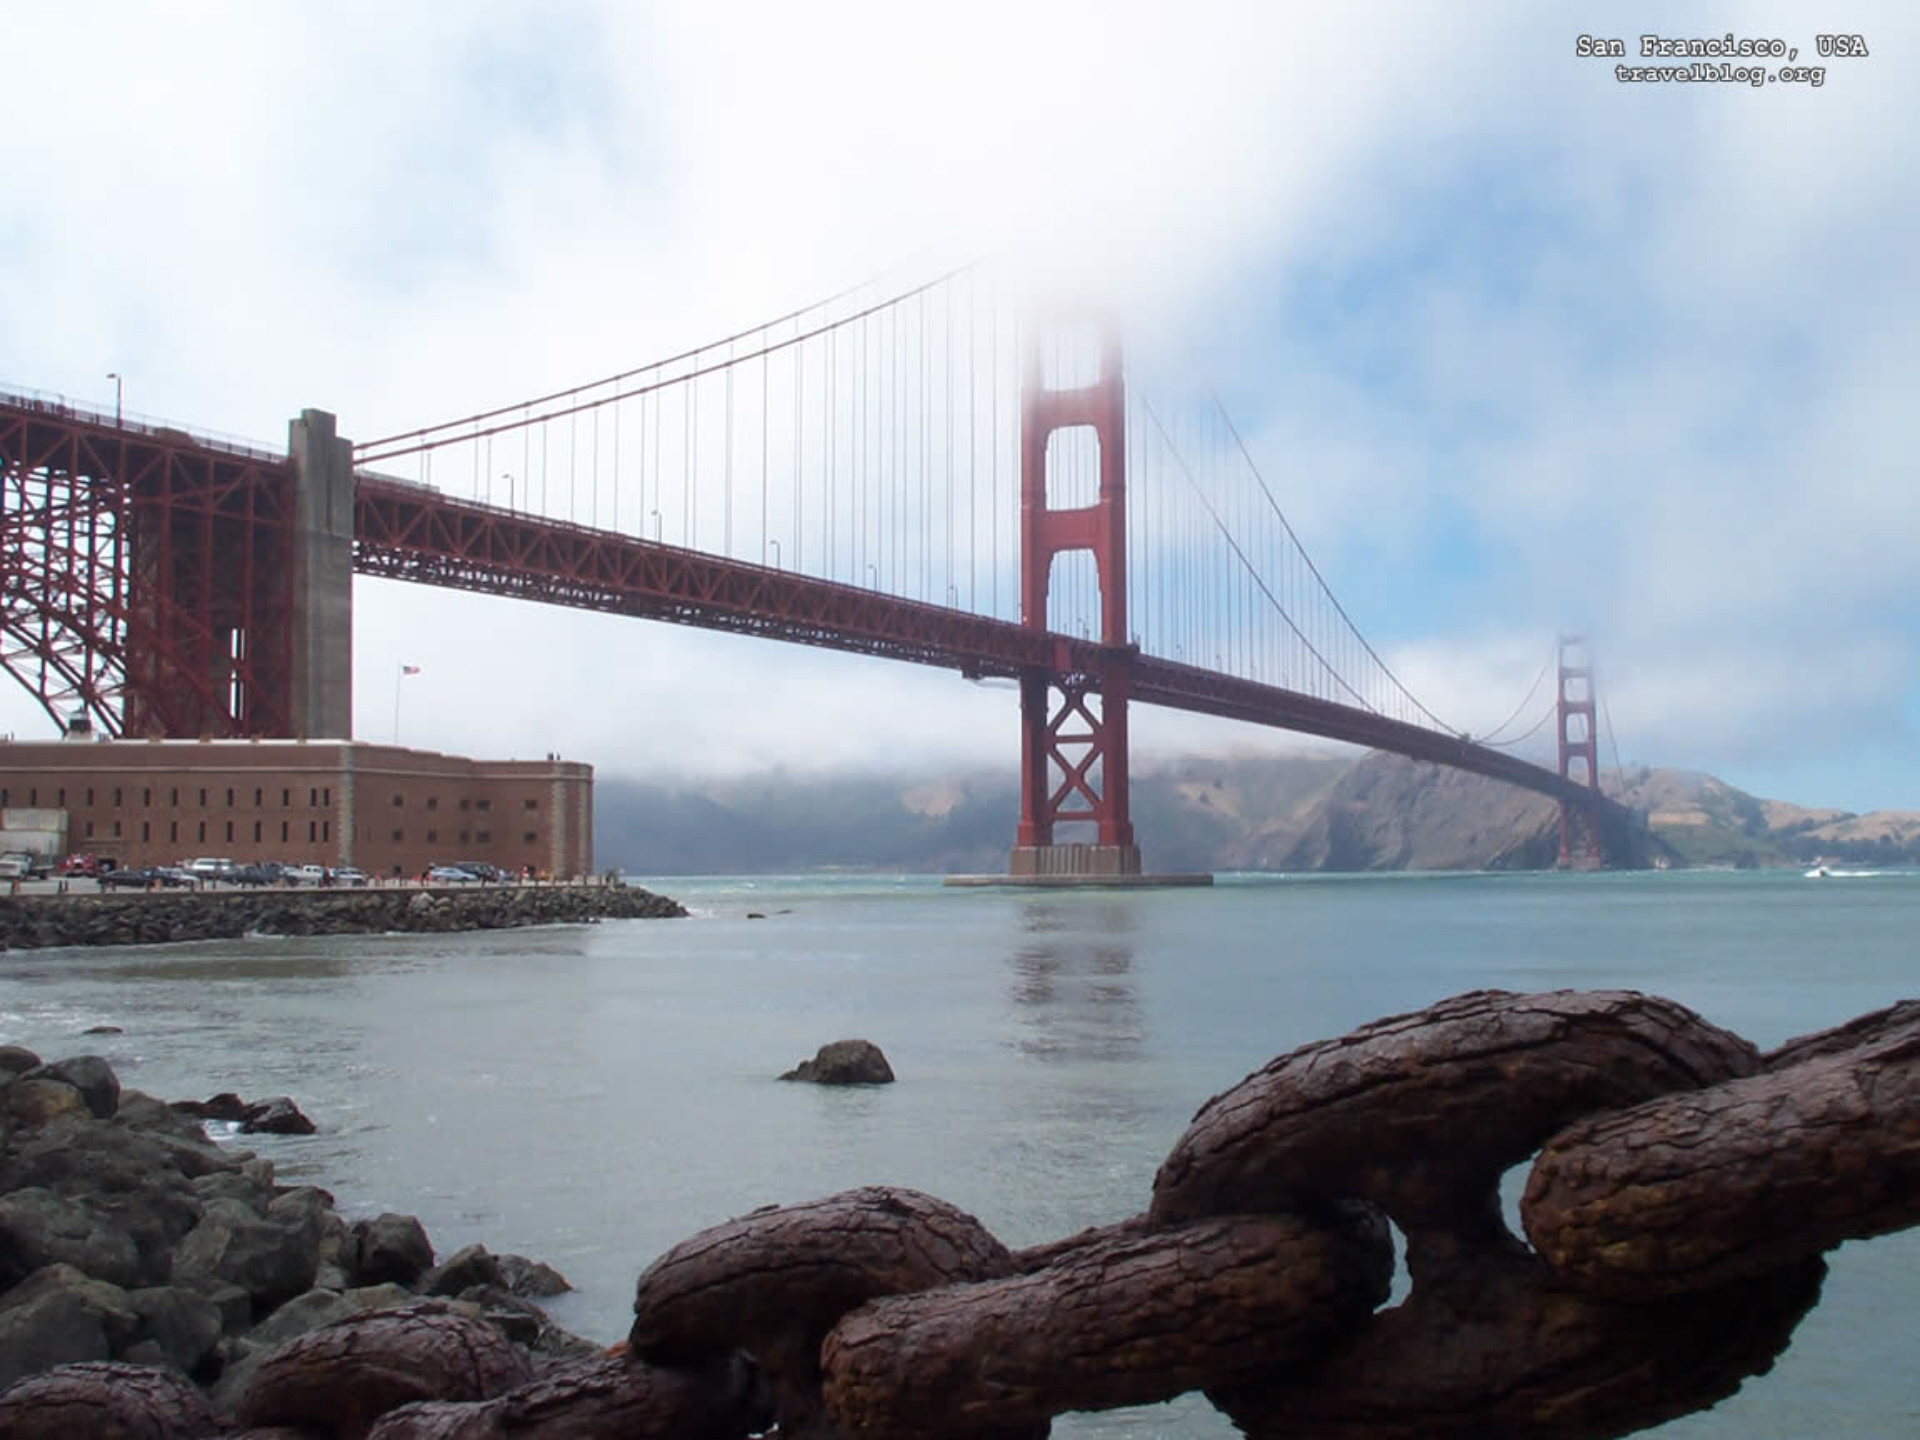 Bioshock Infinite Falling Wallpaper Hd Driver San Francisco Golden Gate Bridge In California